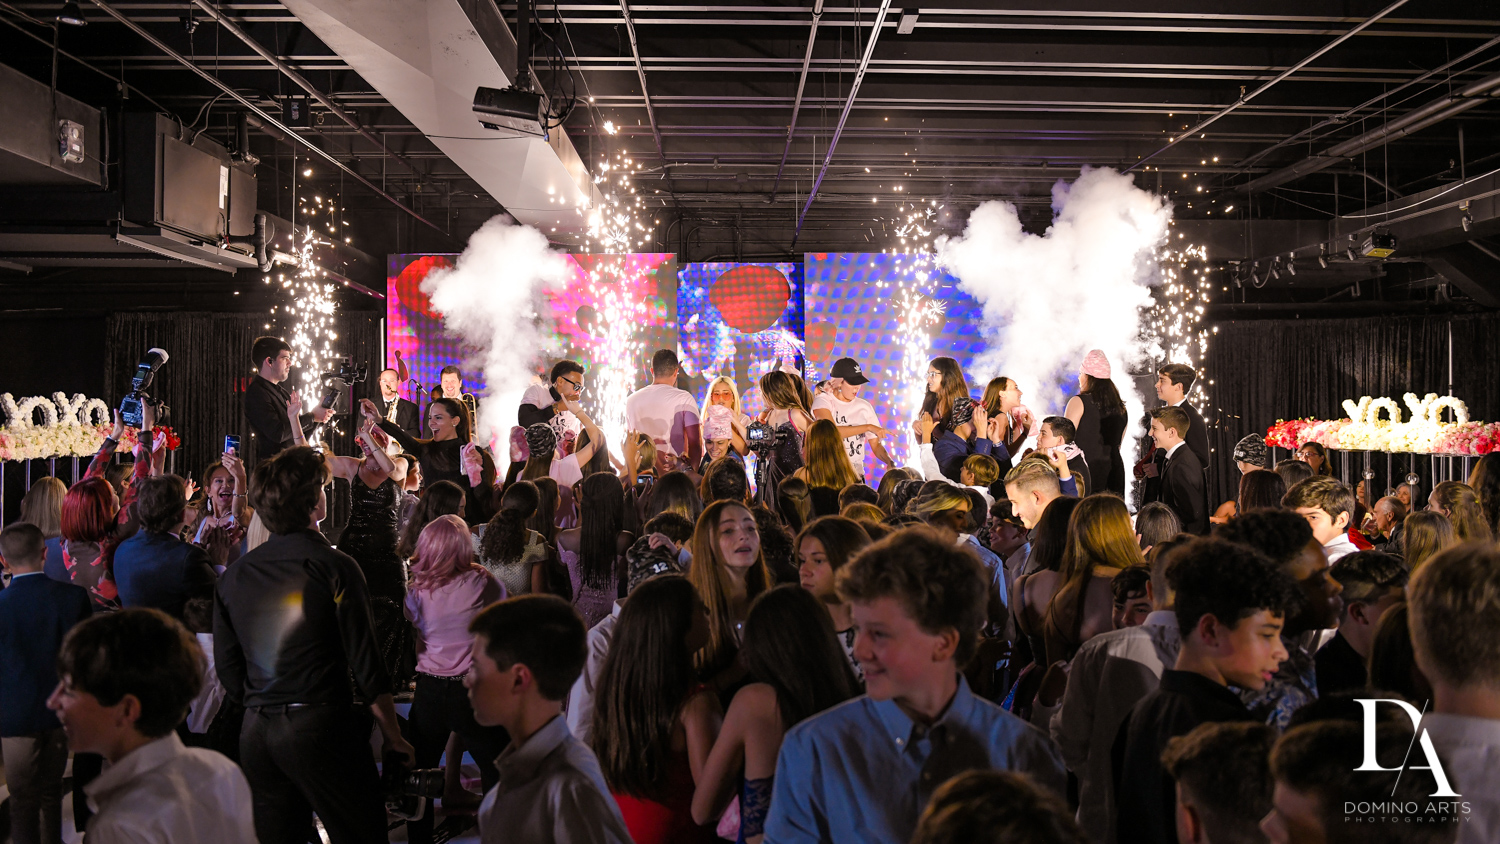 crazy fun party at Fashion Theme Bat Mitzvah at Gallery of Amazing Things by Domino Arts Photography